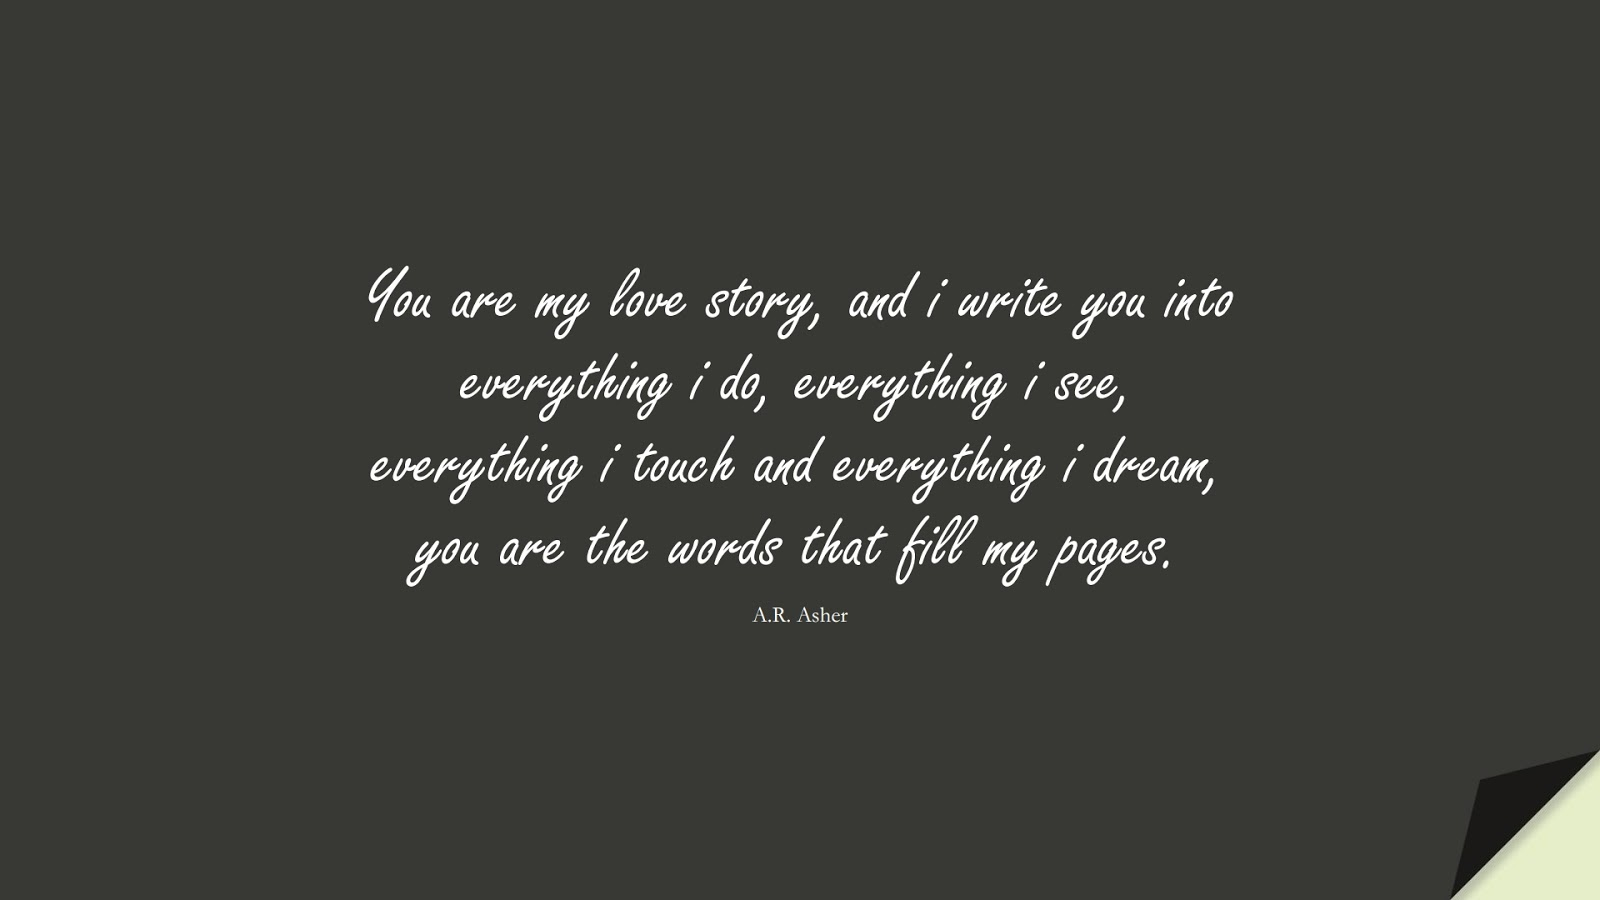 You are my love story, and i write you into everything i do, everything i see, everything i touch and everything i dream, you are the words that fill my pages. (A.R. Asher);  #LoveQuotes